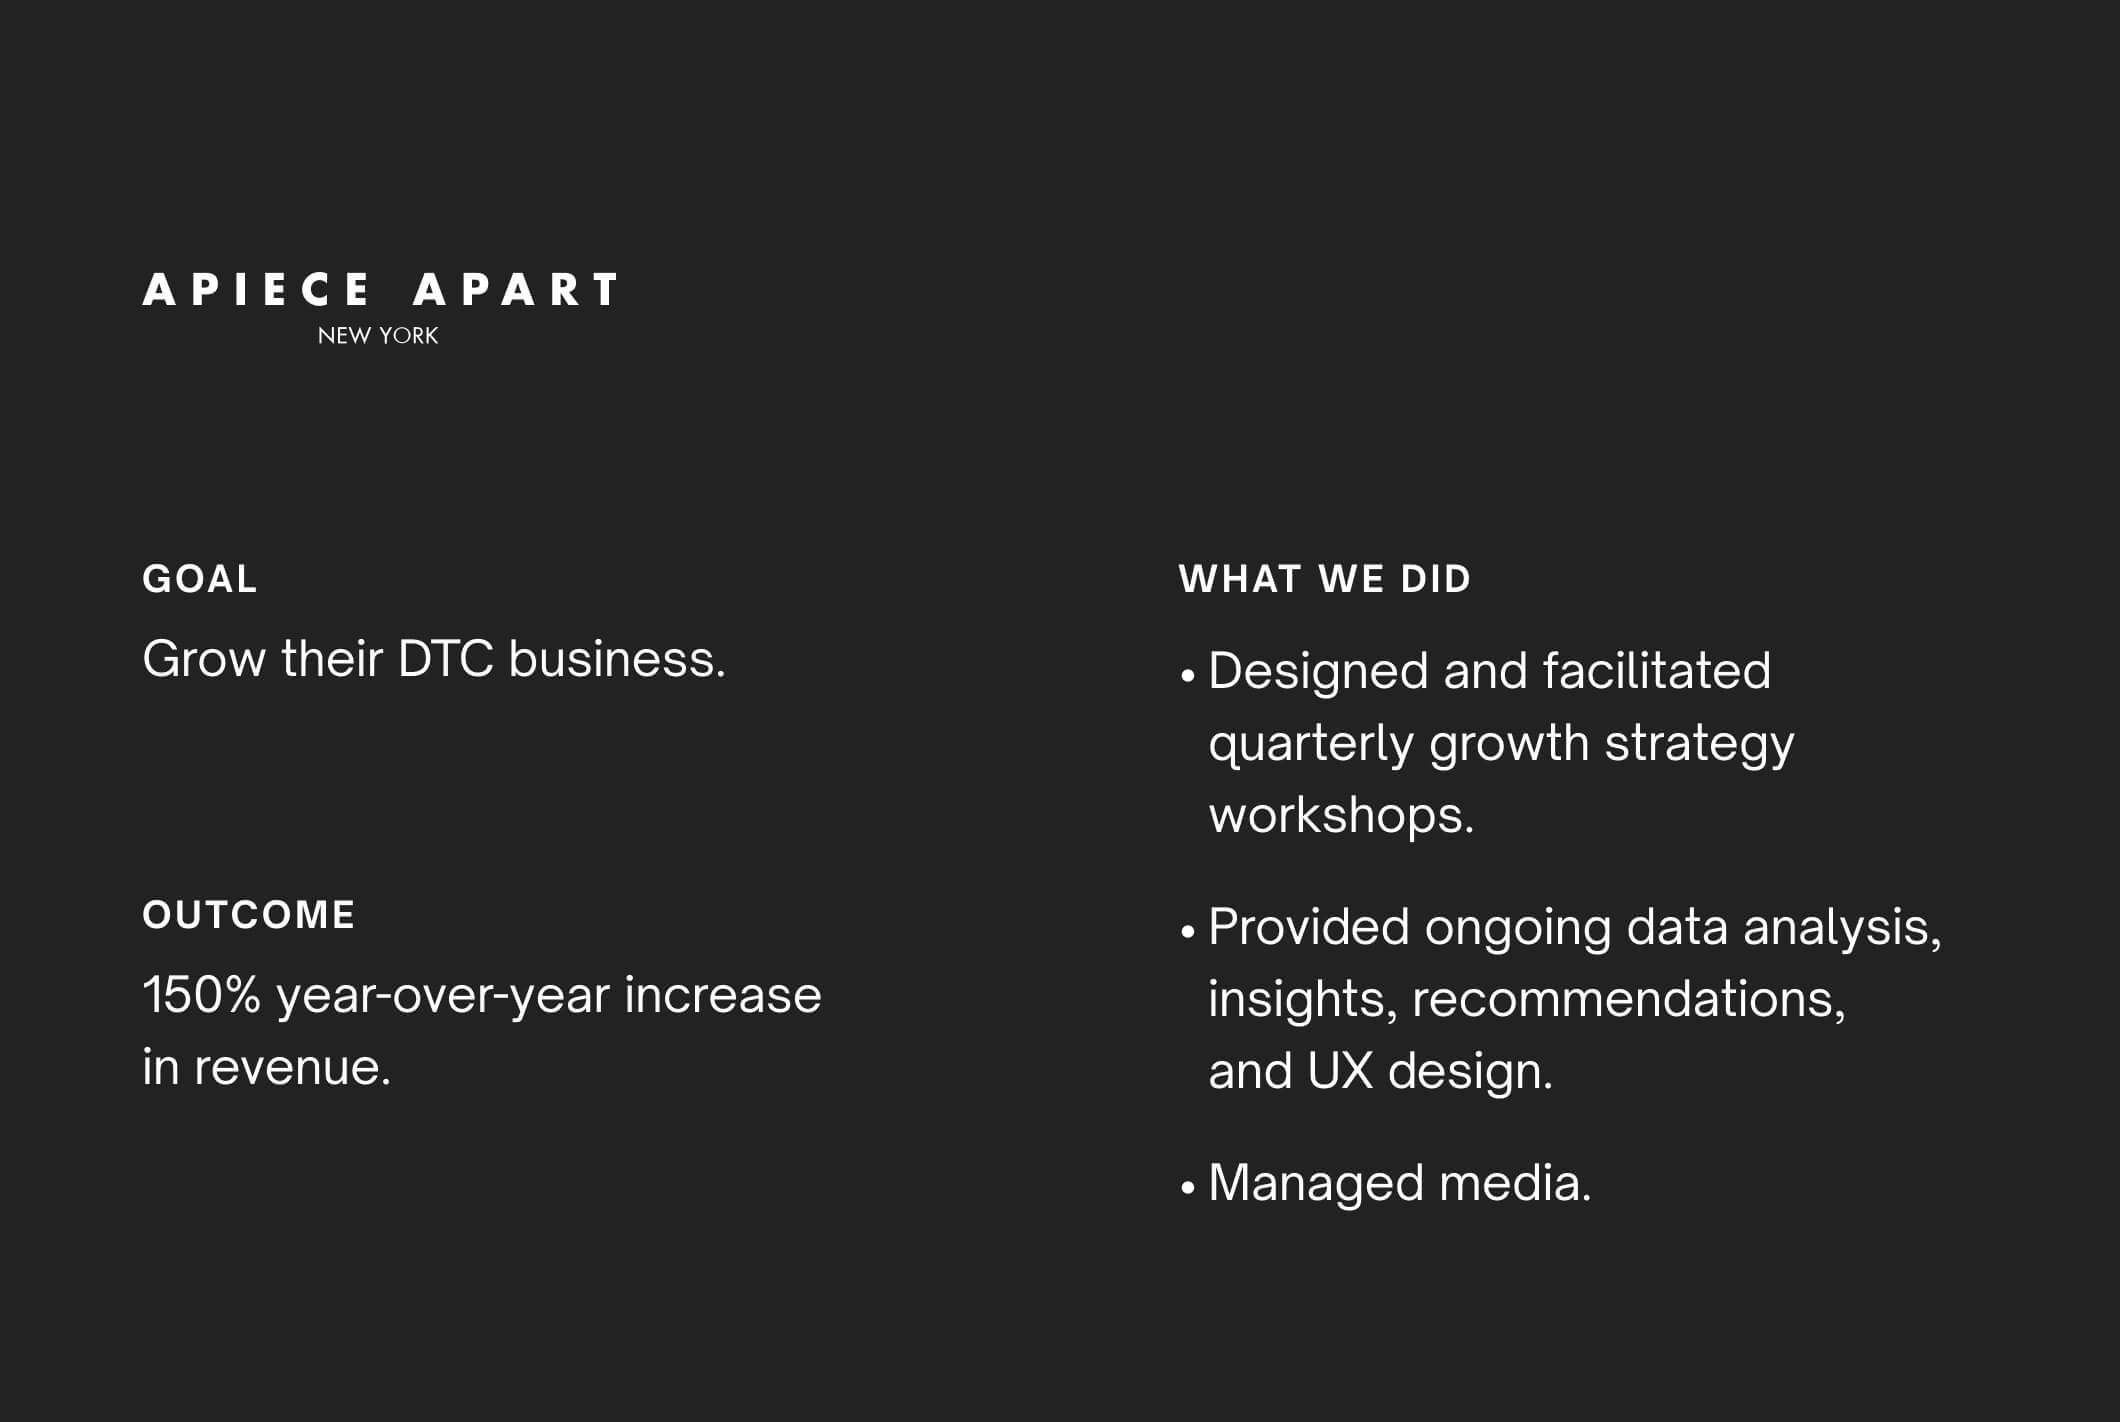 Case study: Apiece Apart - Designed and facilitated quarterly growth strategy workshops.